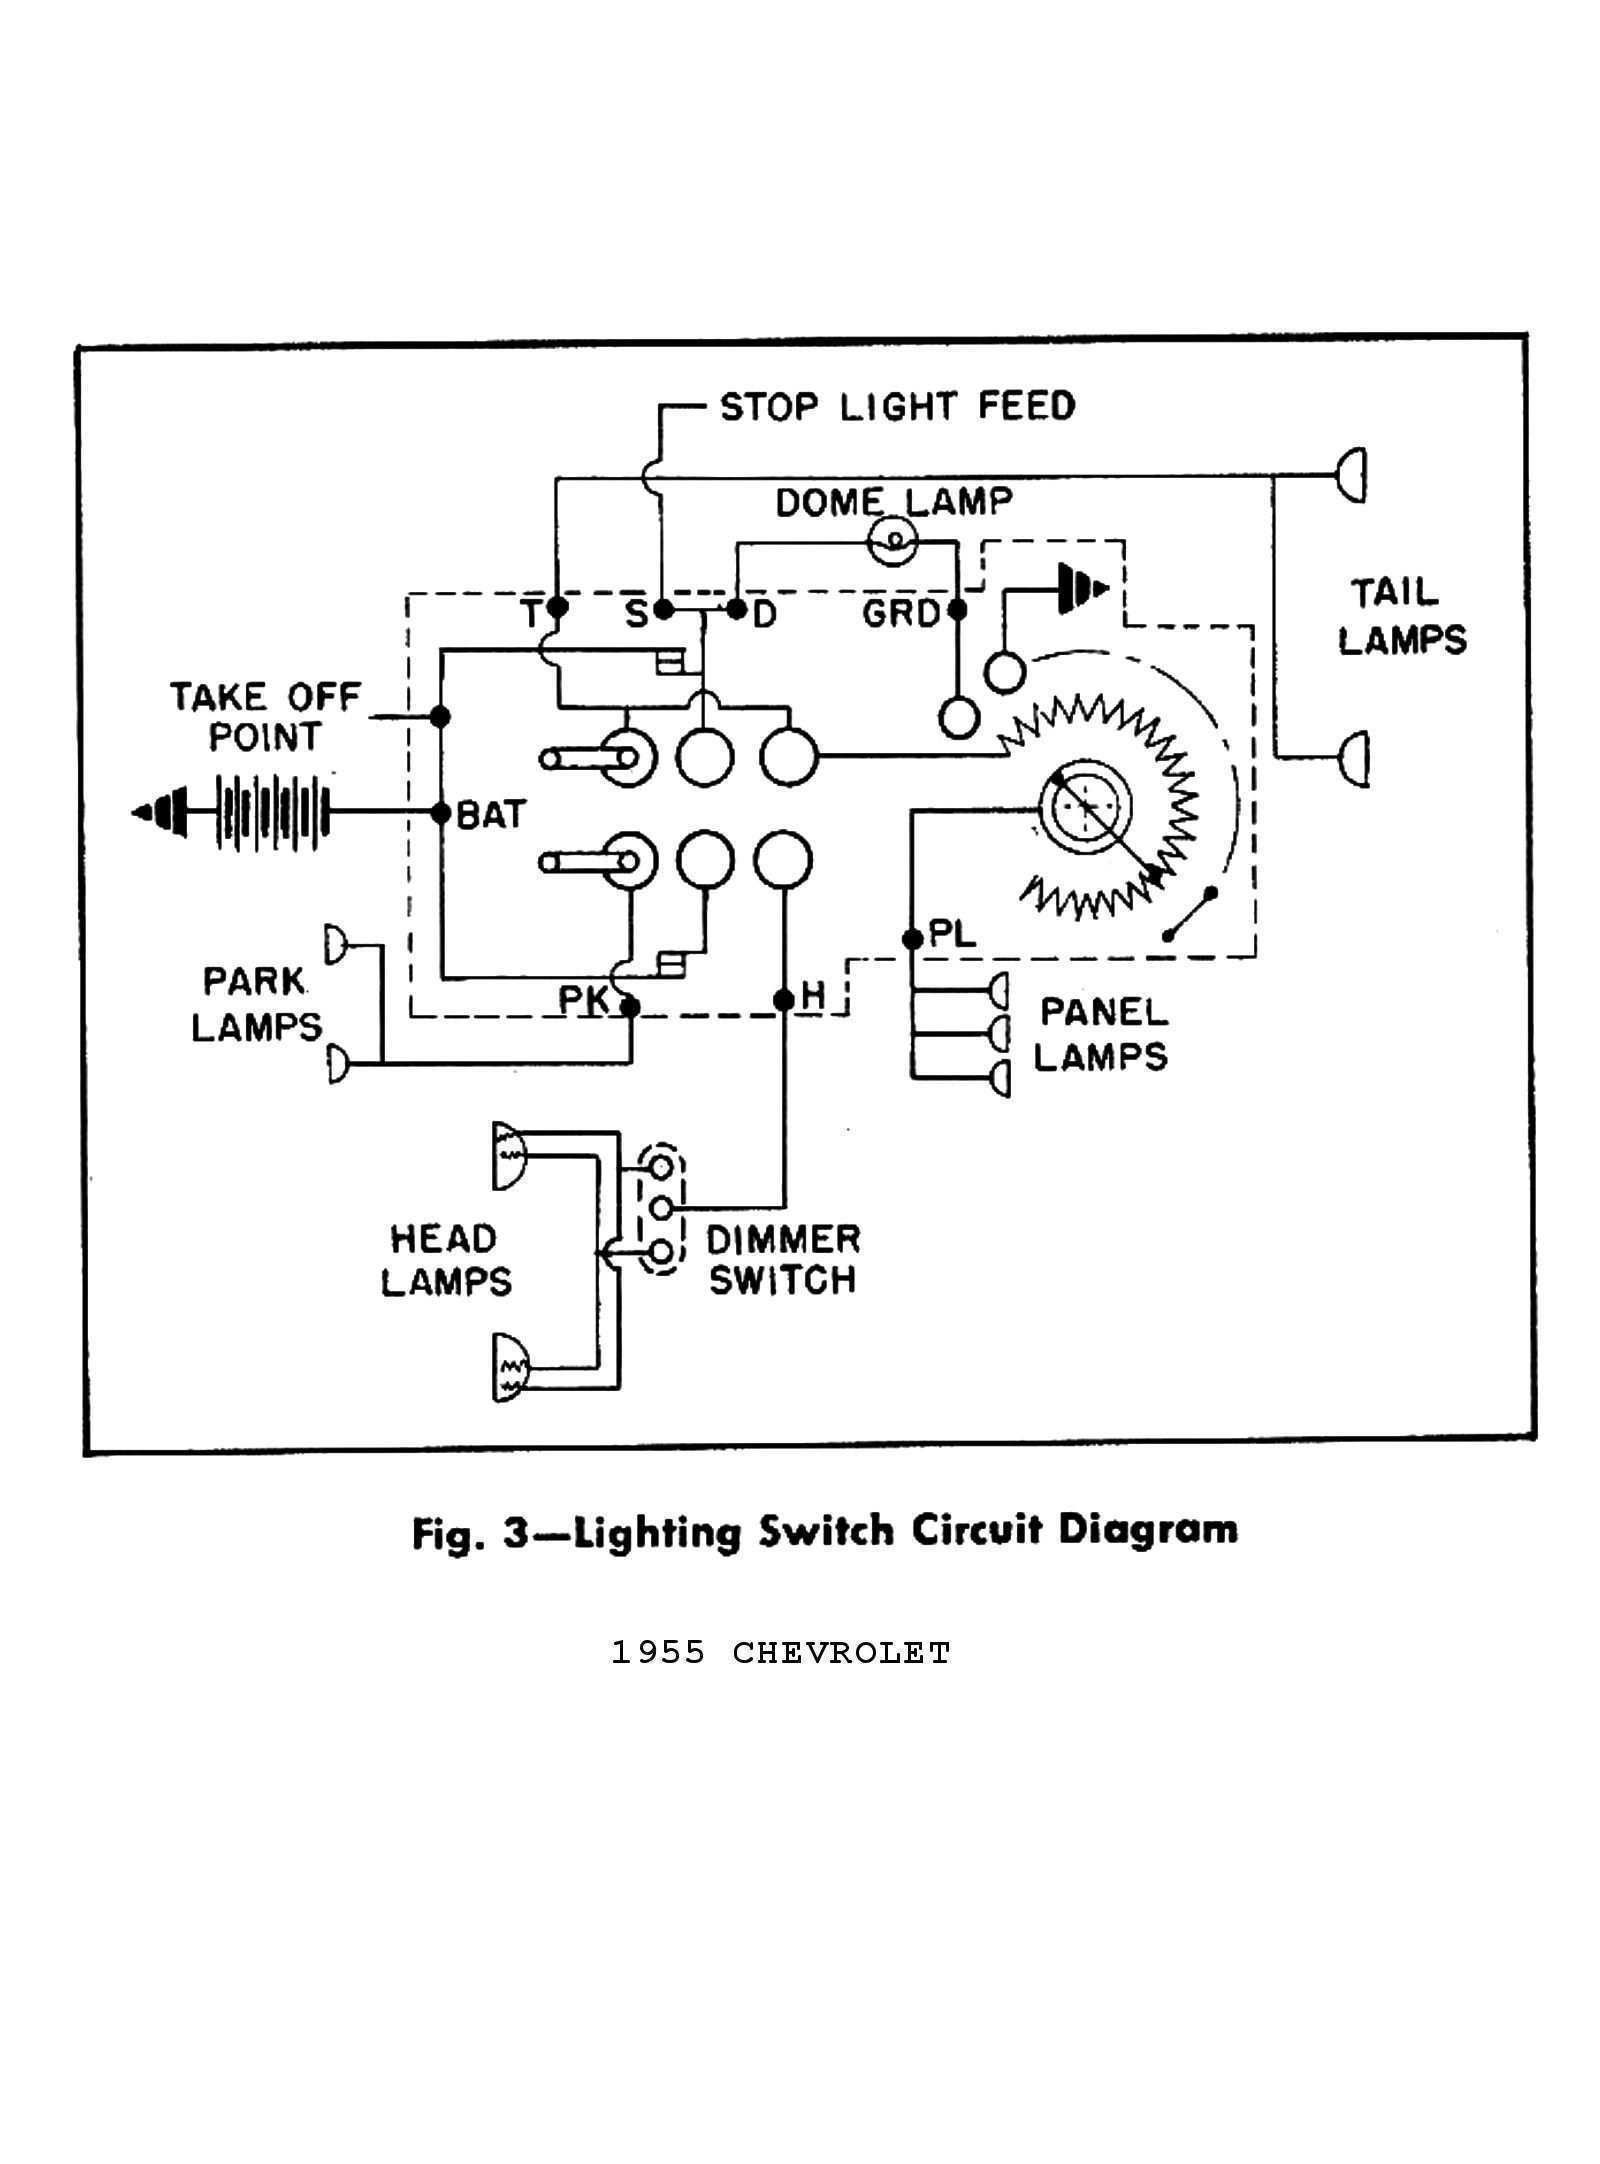 hight resolution of 41 ford headlight switch wiring diagram wiring diagram valueford dimmer switch wiring wiring diagram user 41